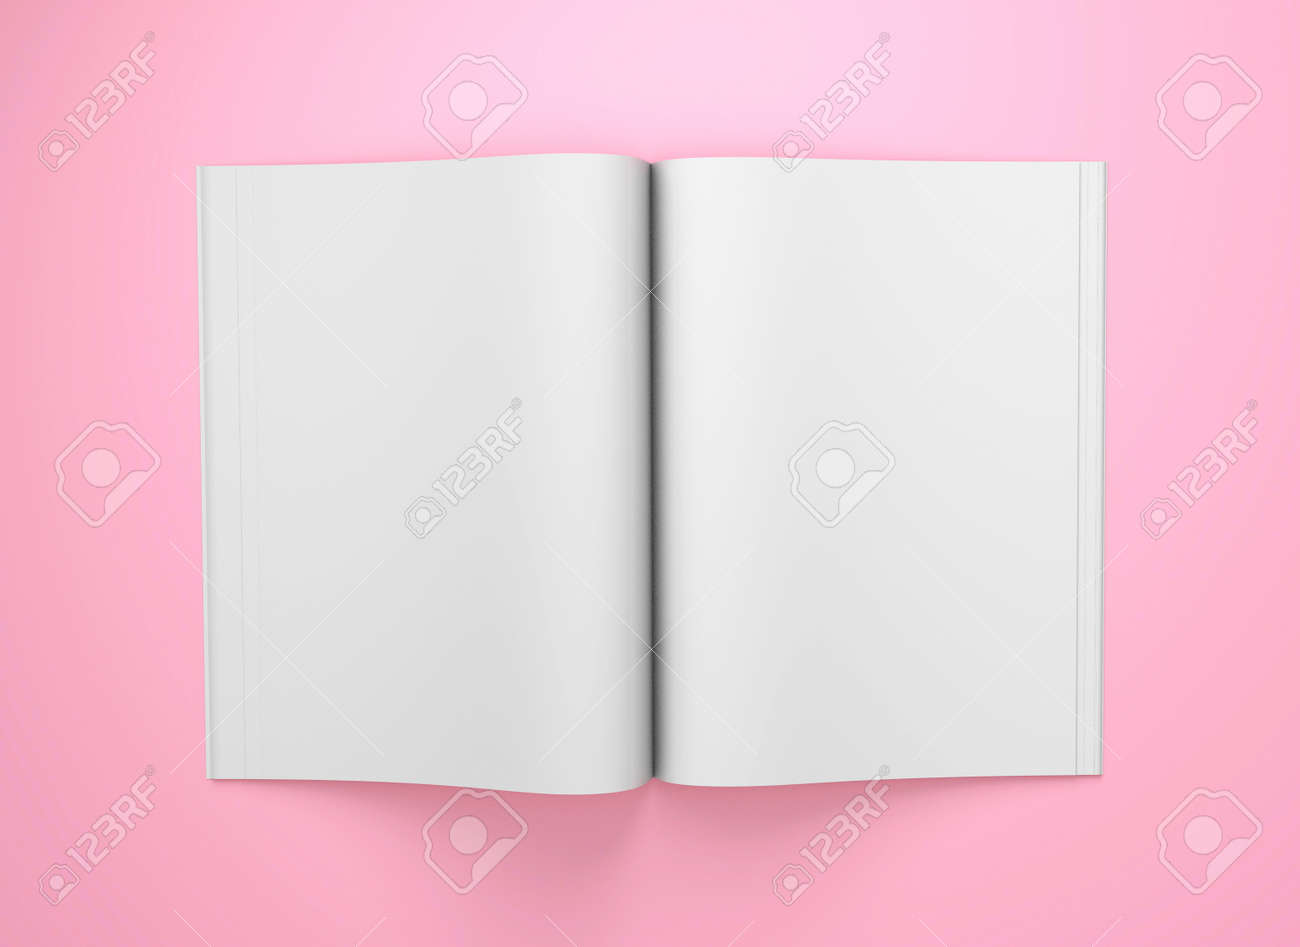 Open magazine mockup. Blank magazine template for copy space. Empty space in magazine. Pink background. 3d render - 170983120